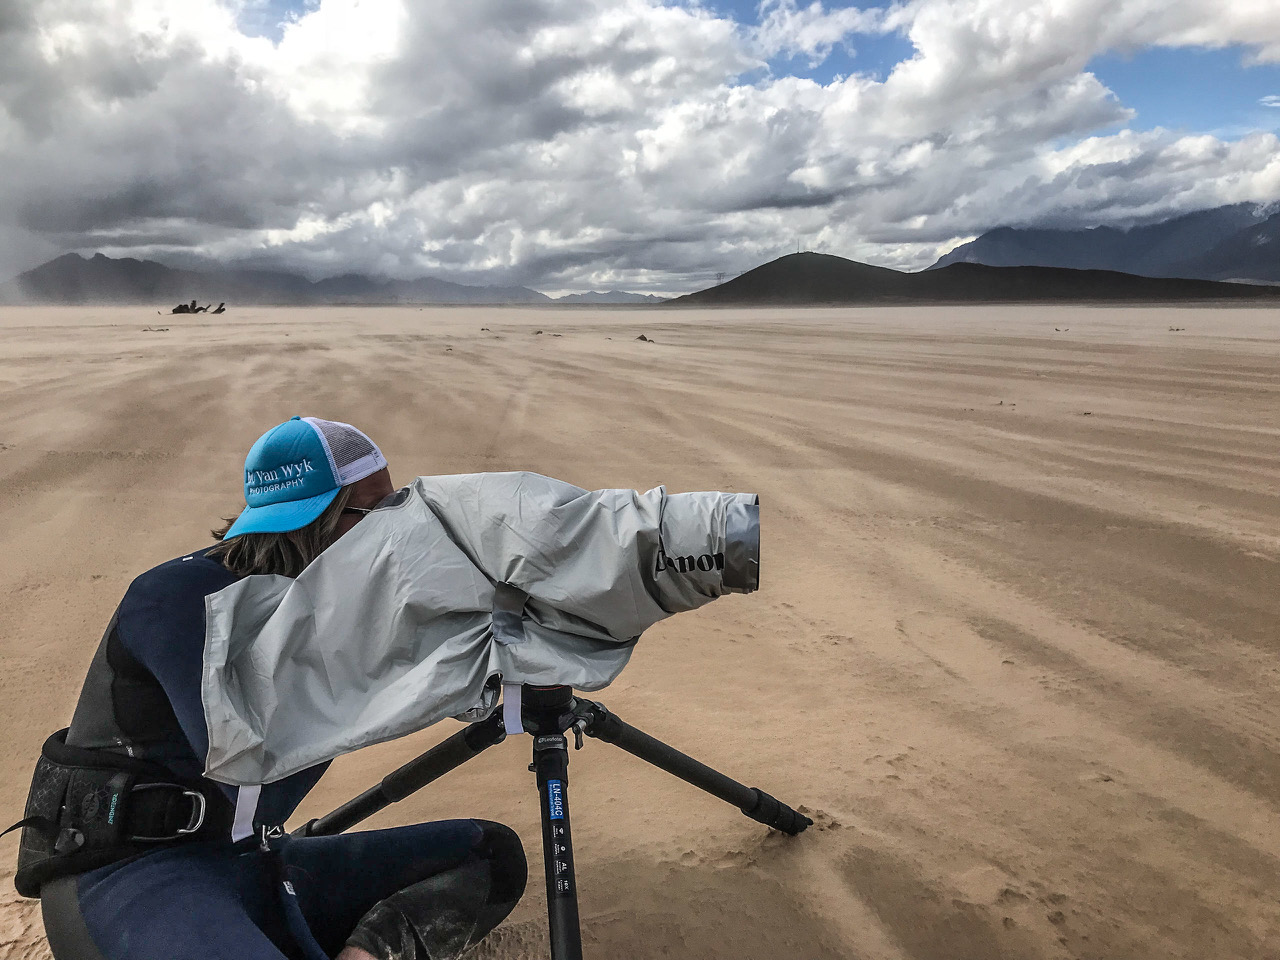 """""""For great shots you have to go to remote places, climb mountains, lay down in the dirt or get yourself sandblasted on the beach.""""     - Bo van Wyk."""